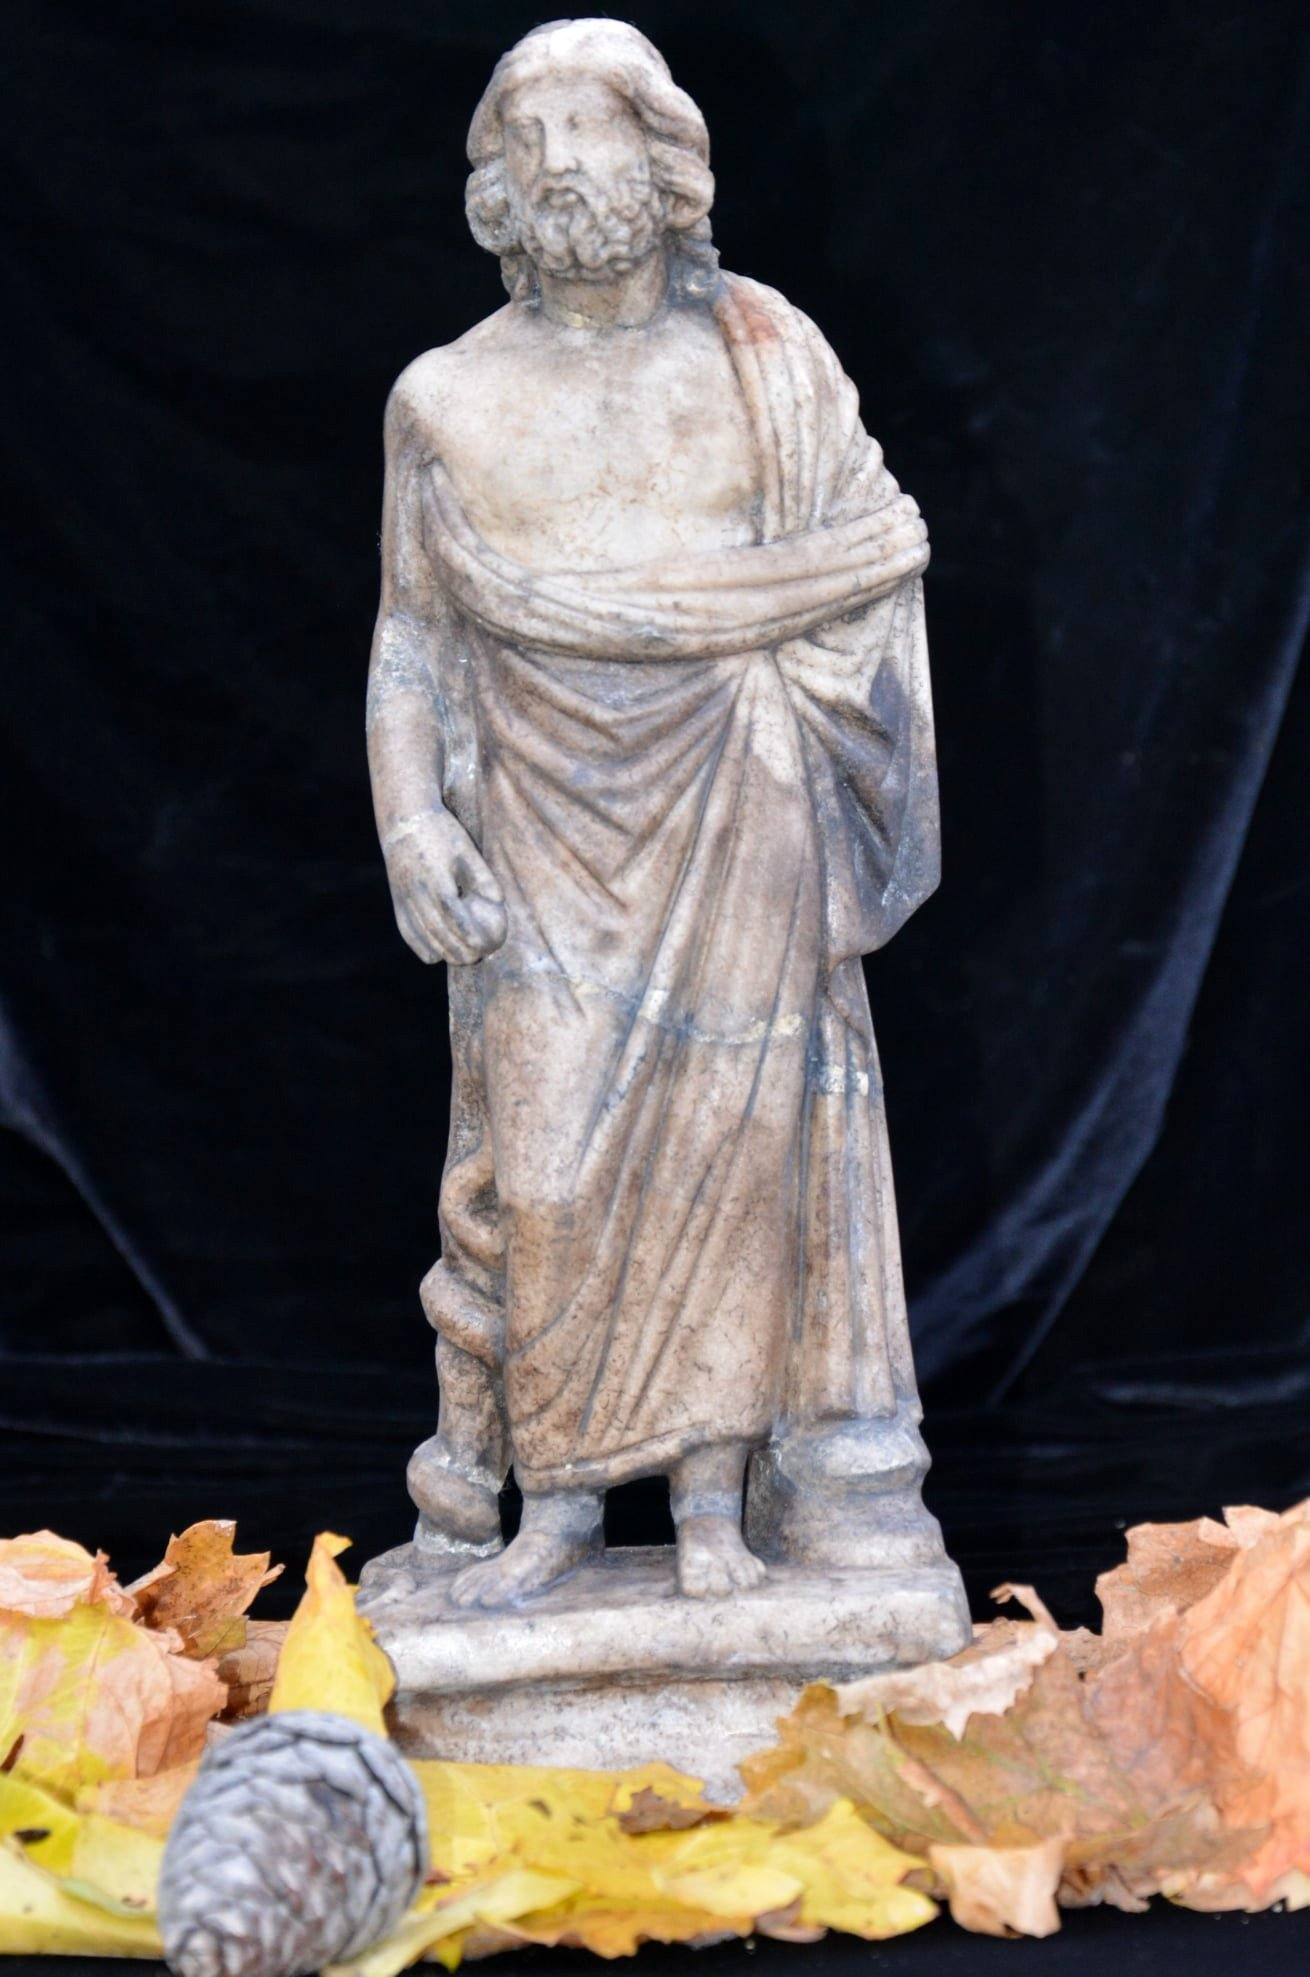 The statue was determined to be depicting Asclepius, evident from his serpent-entwined staff, Jan. 6, 2021. (DHA Photo)